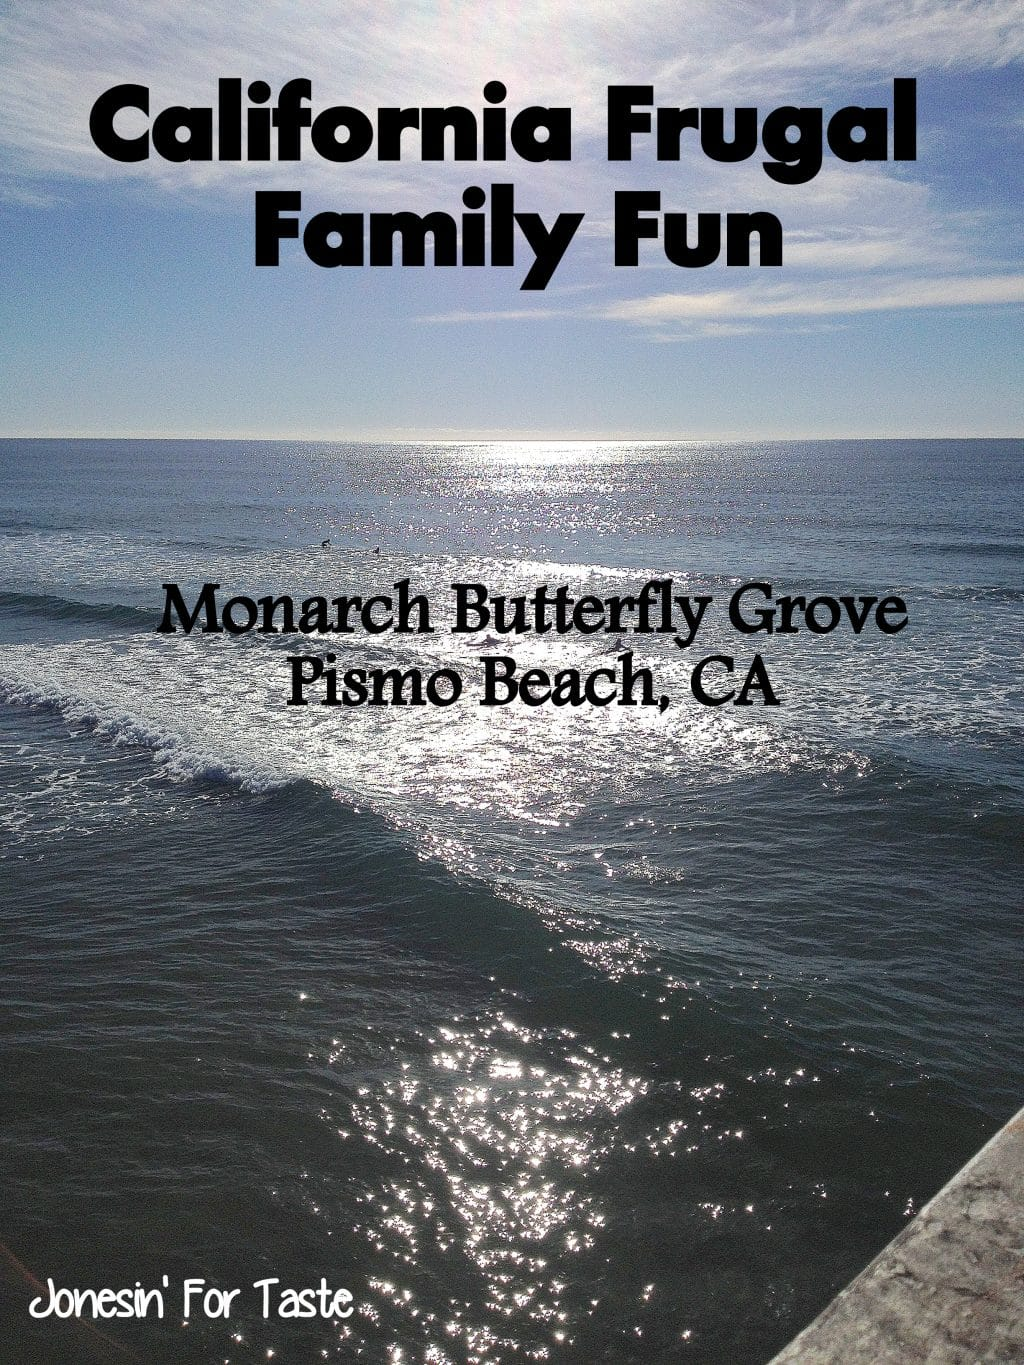 California Frugal Family Fun- Pismo Beach Monarch Butterfly Grove